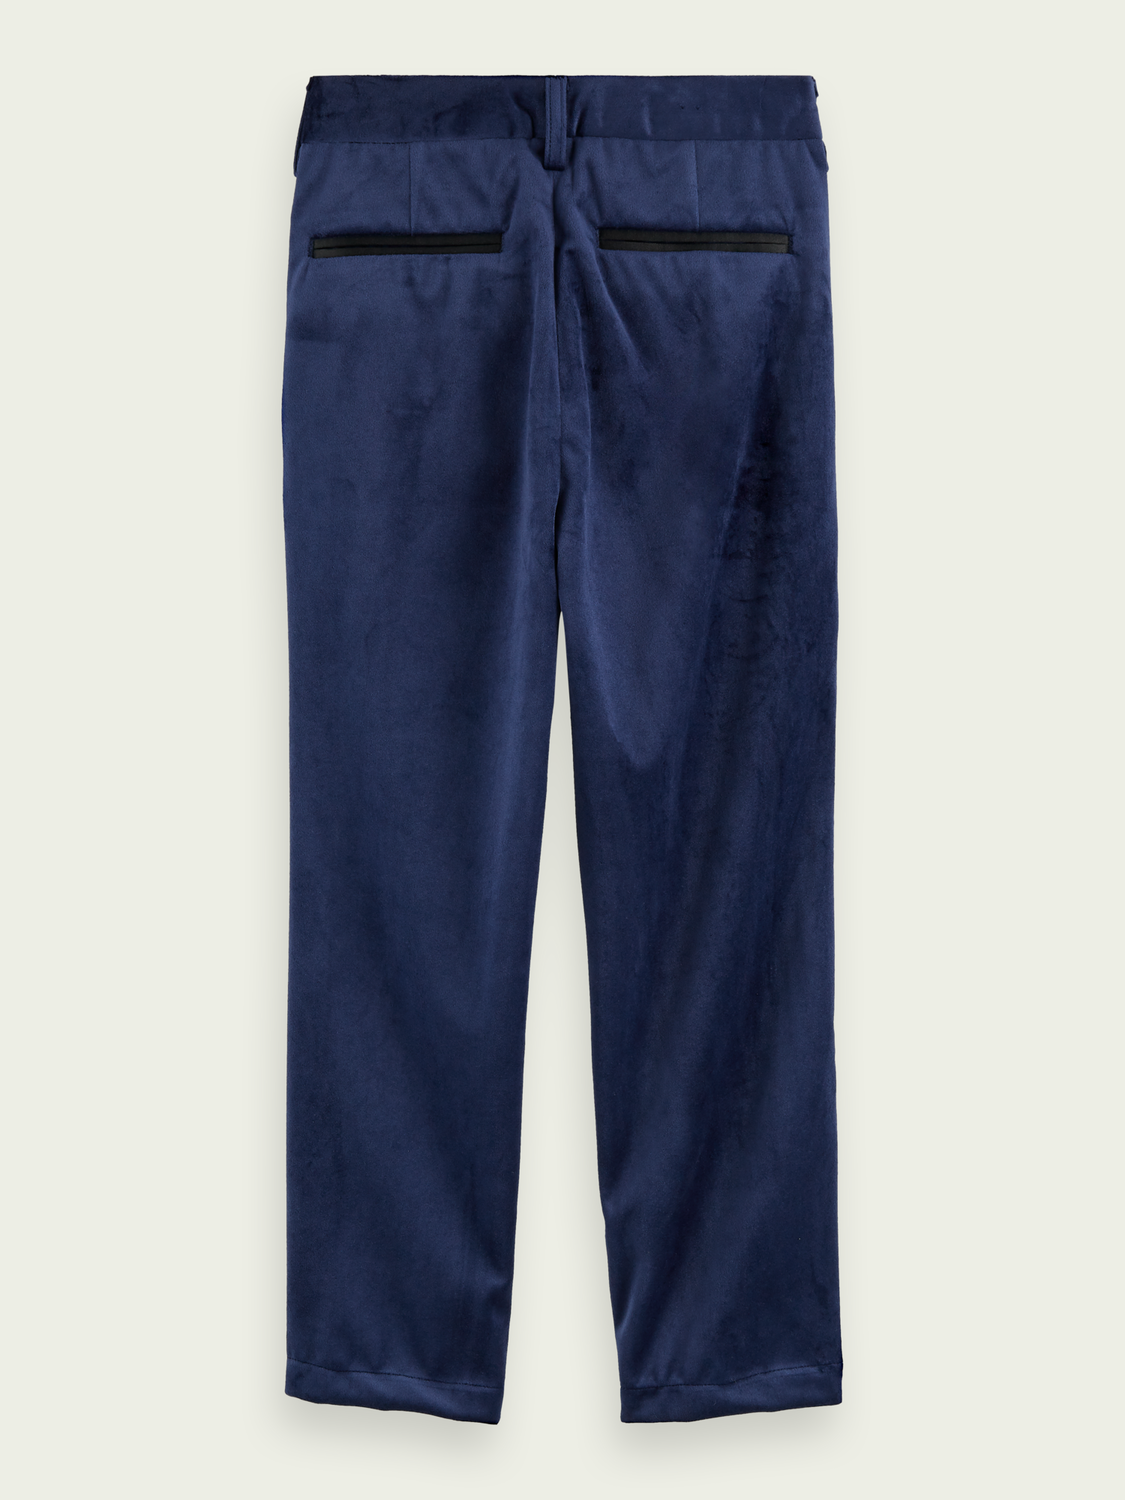 Kids Slim fit velvet pants